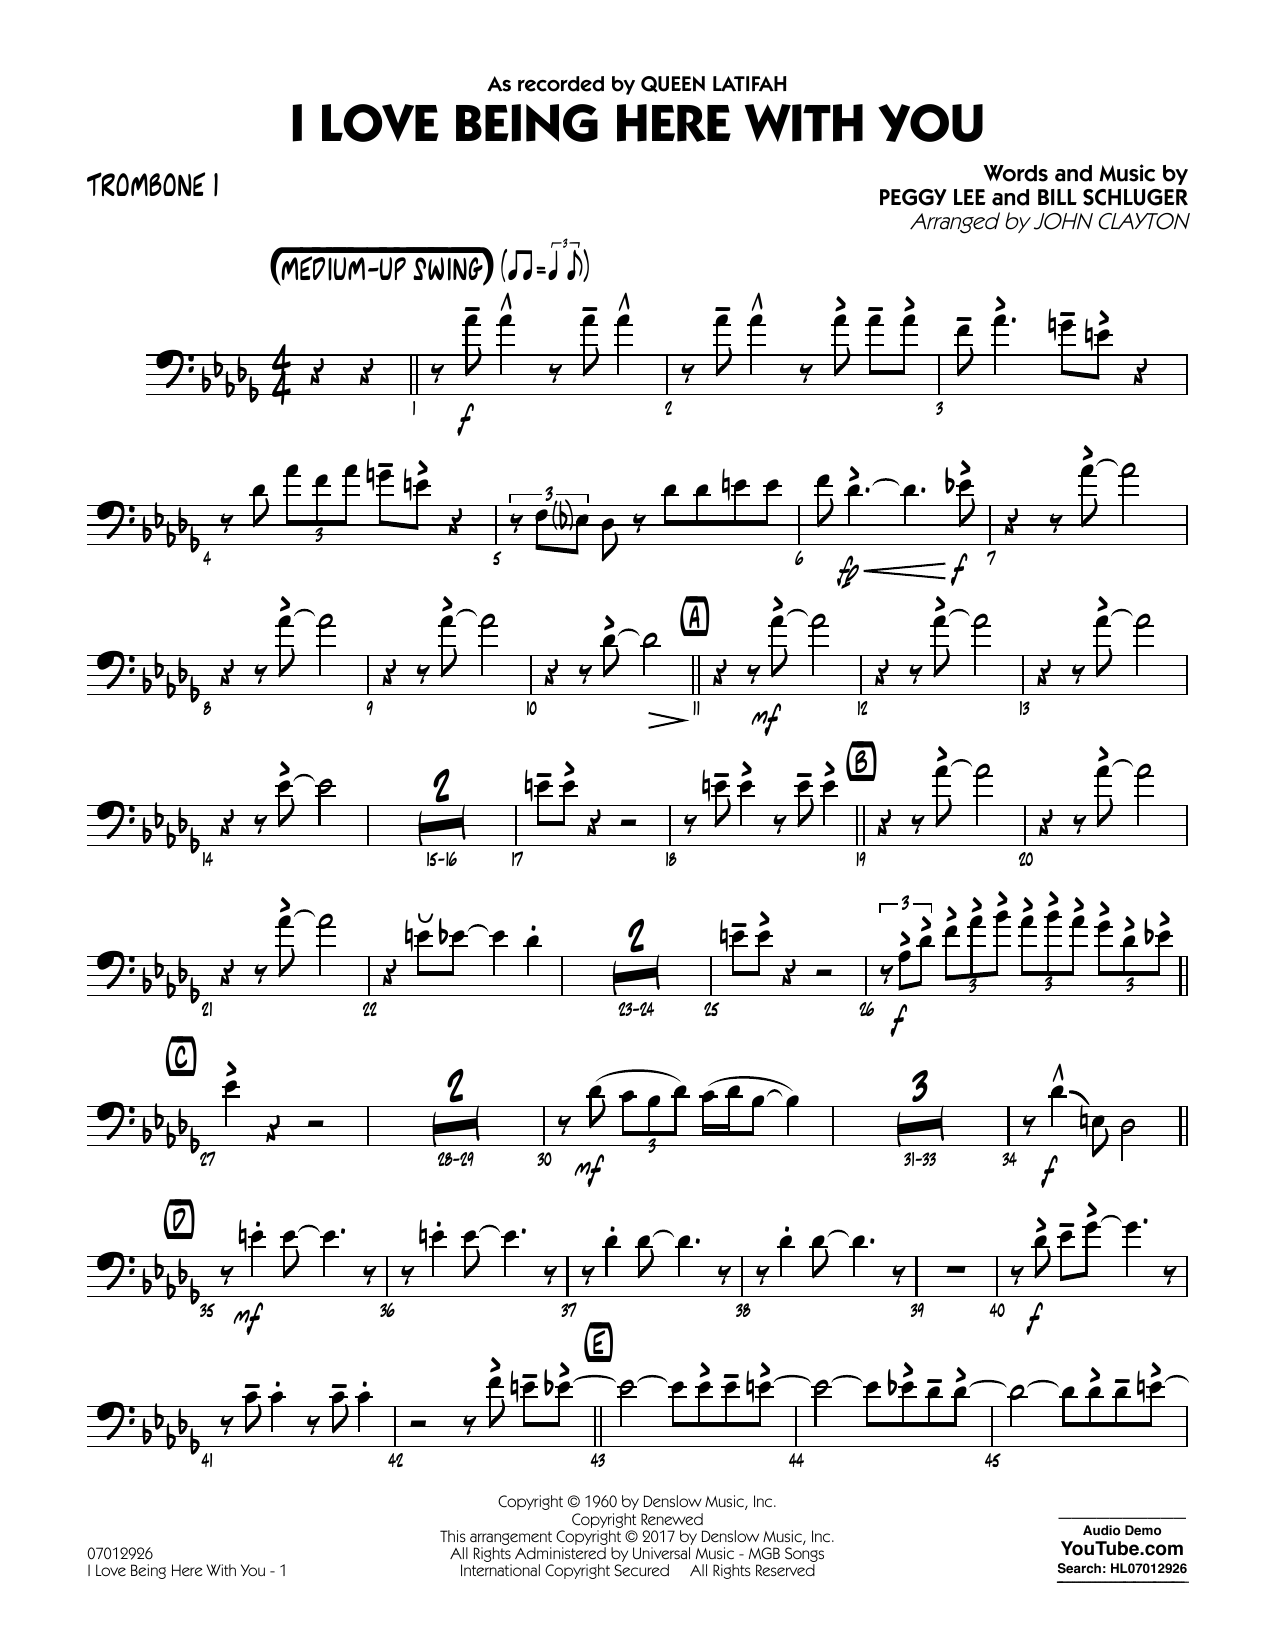 John Clayton I Love Being Here with You (Key: Db) - Trombone 1 sheet music notes and chords. Download Printable PDF.